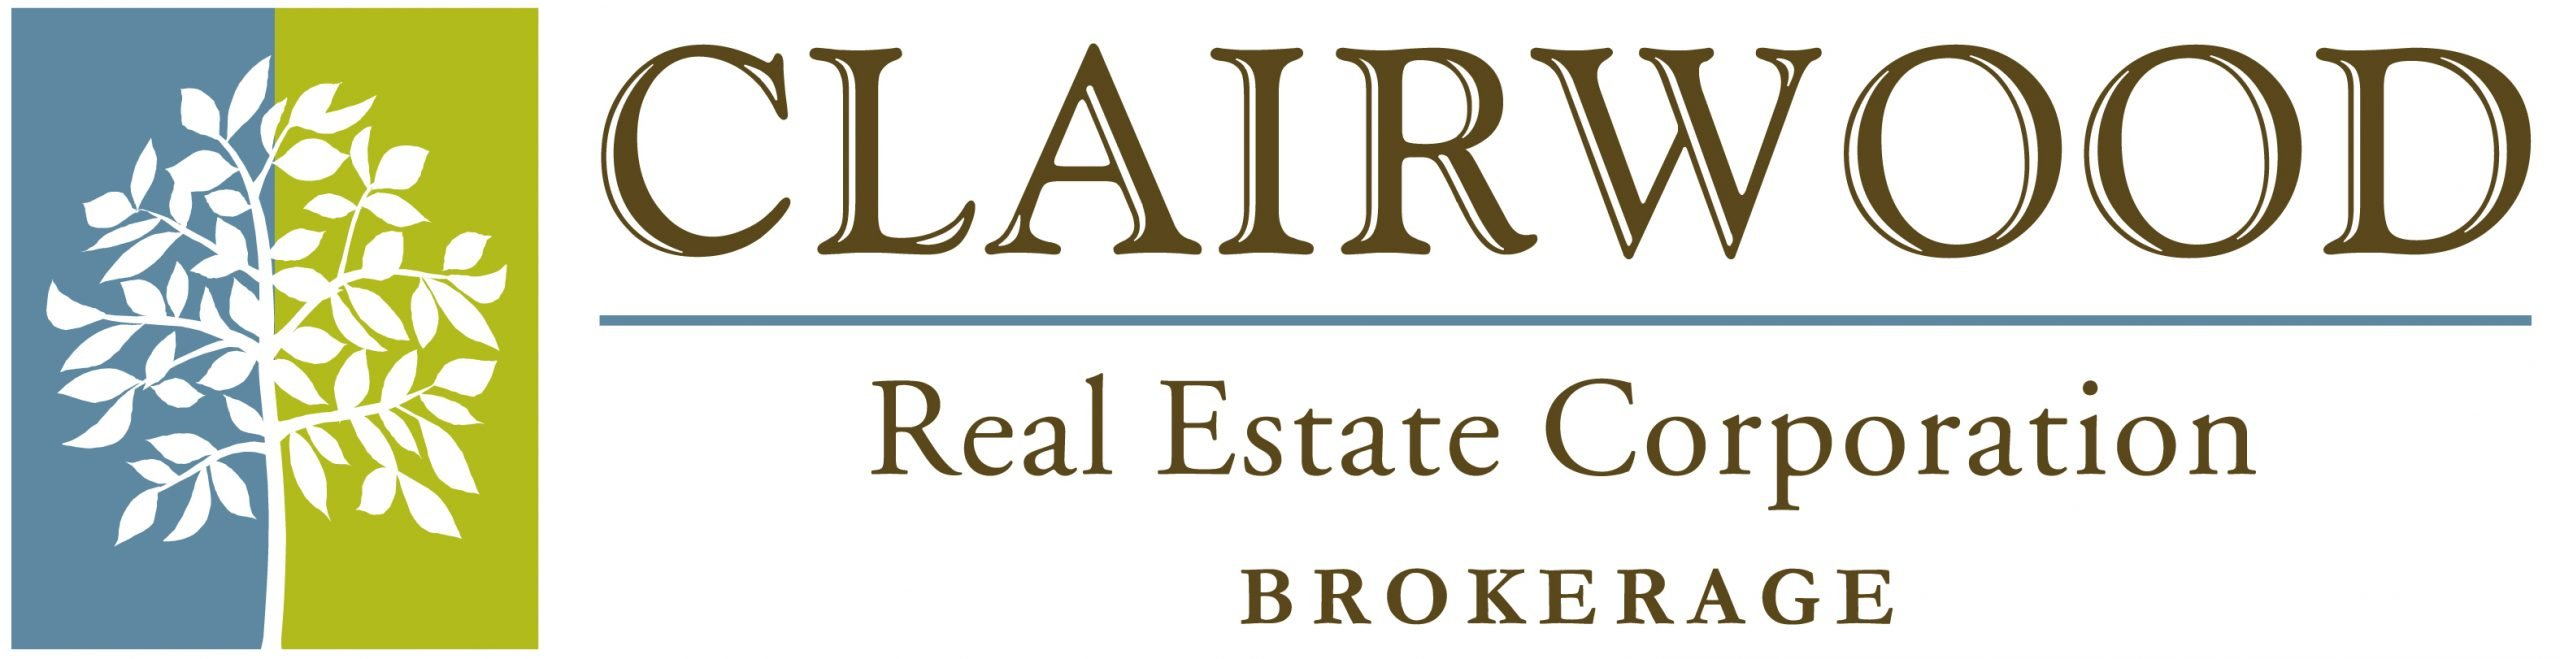 Clairwood Real Estate